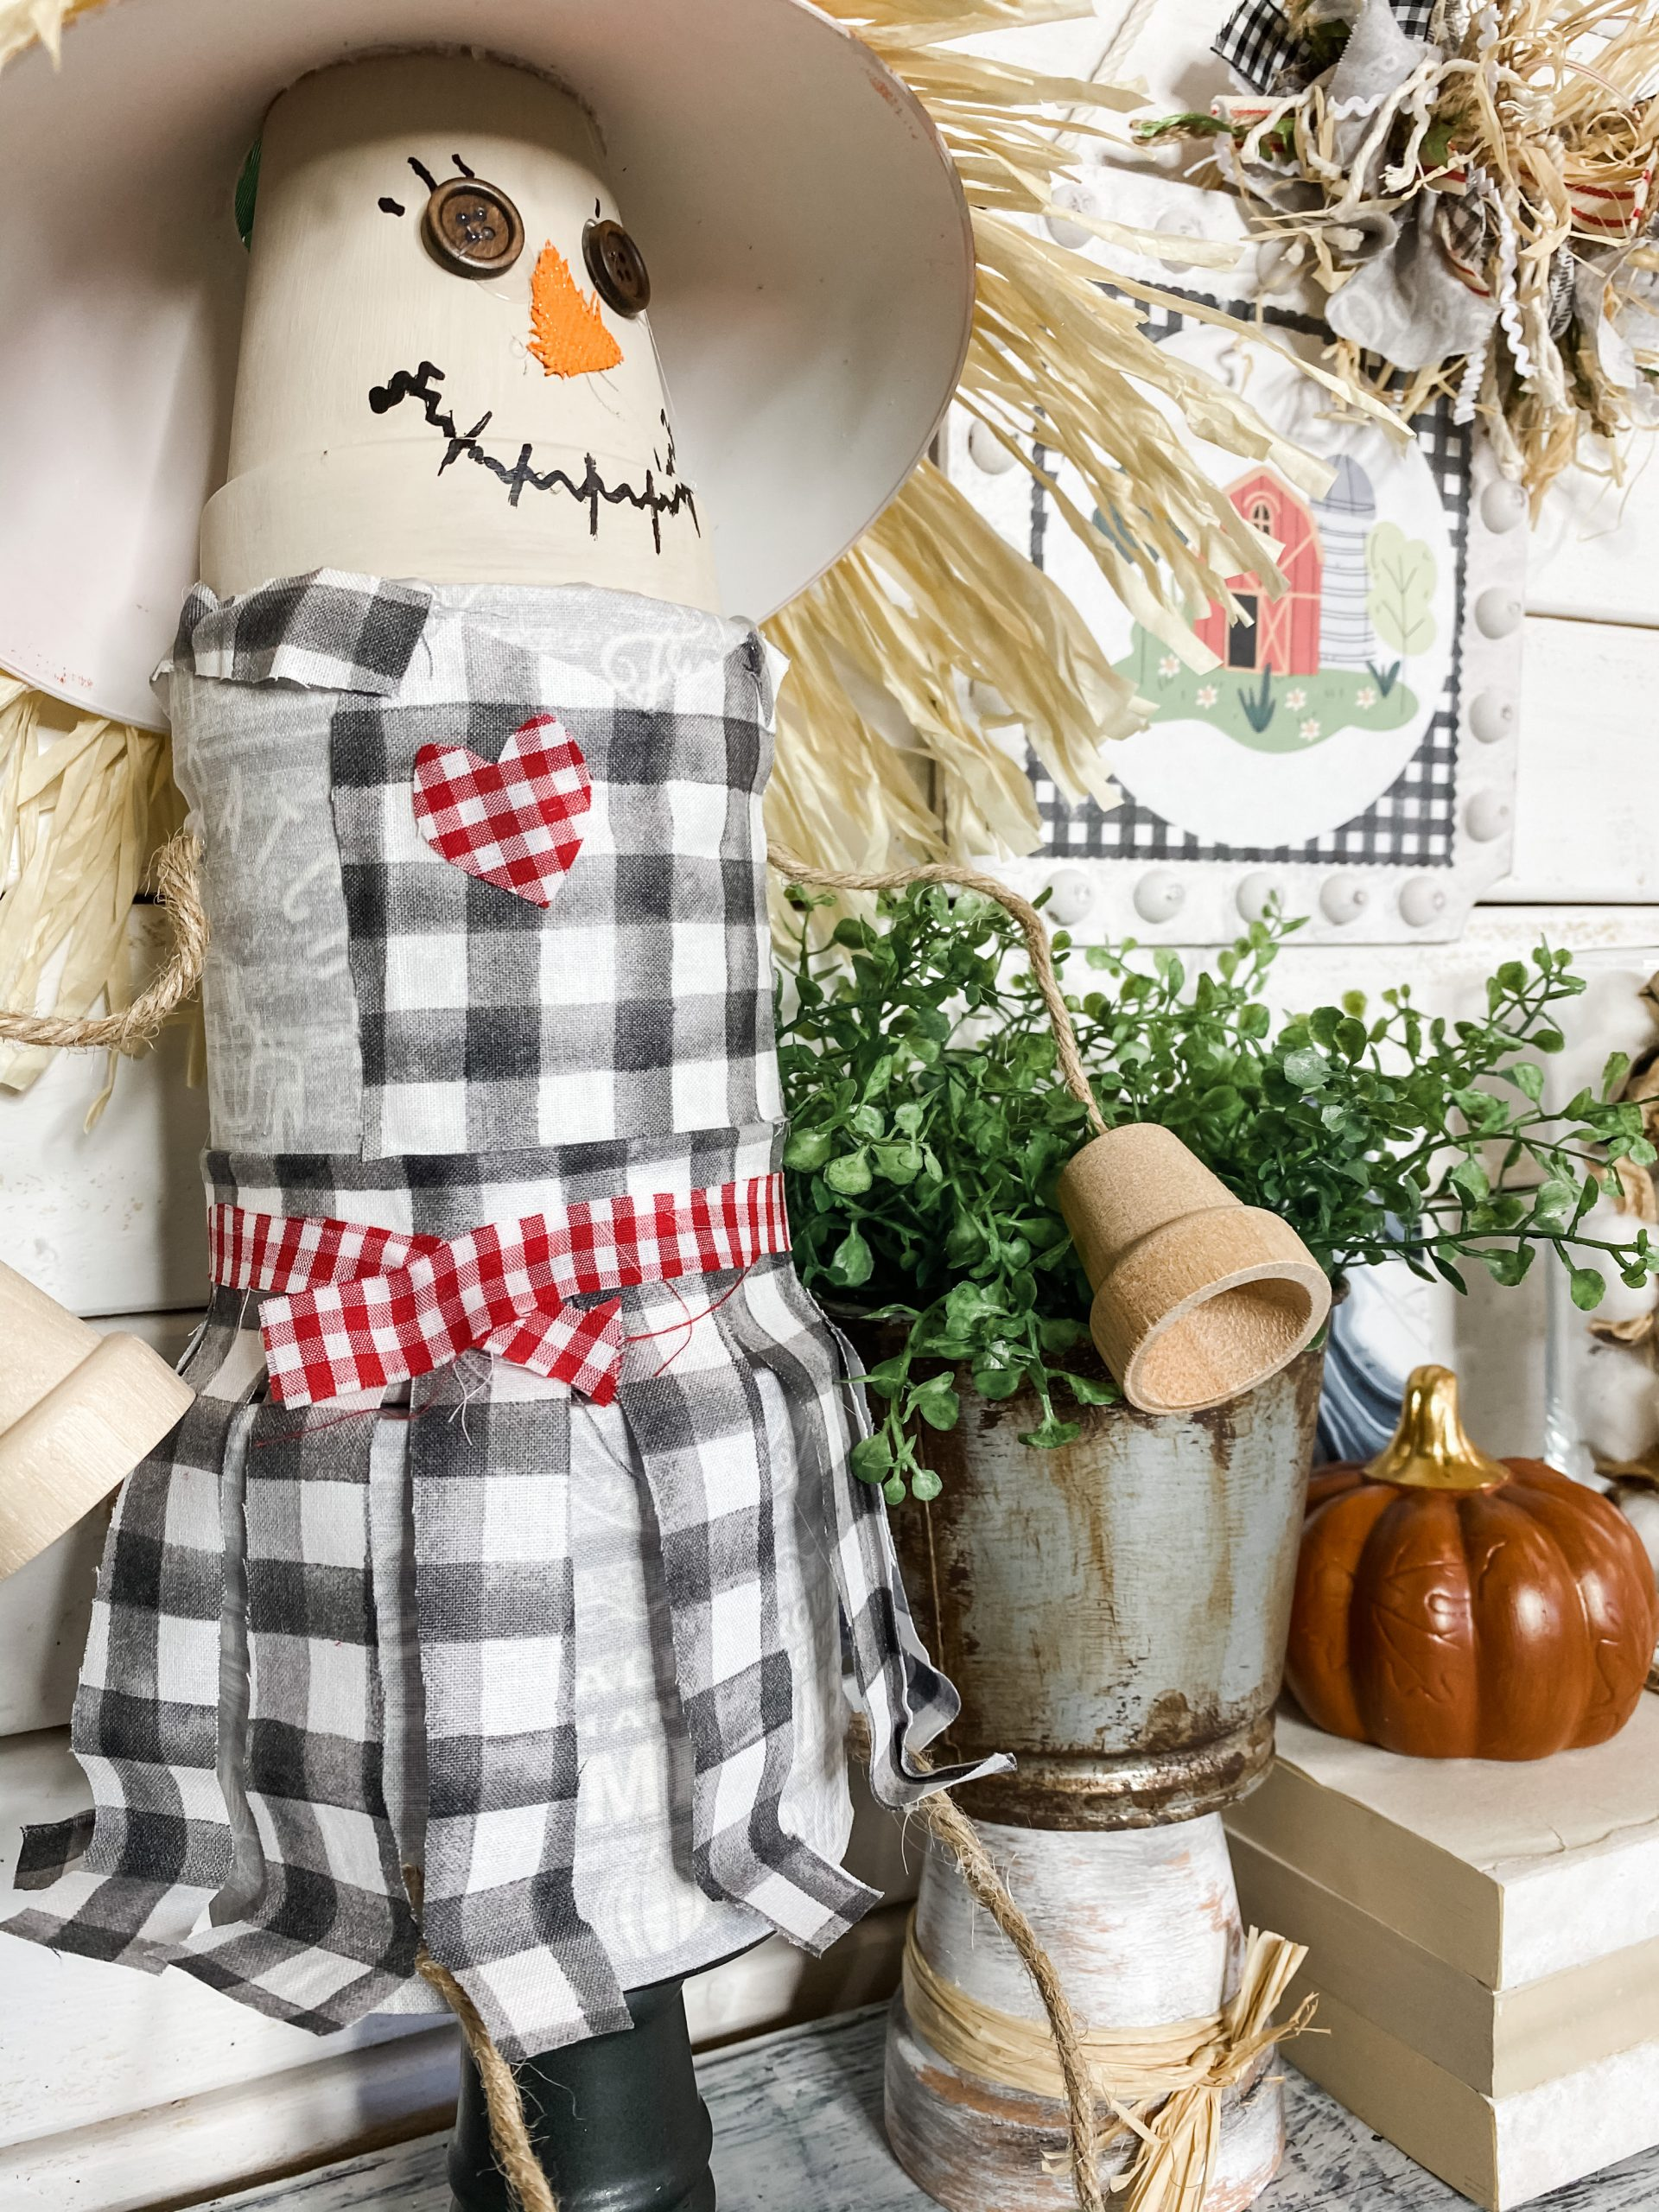 How To Make An Easy Diy Scarecrow Shelf Sitter